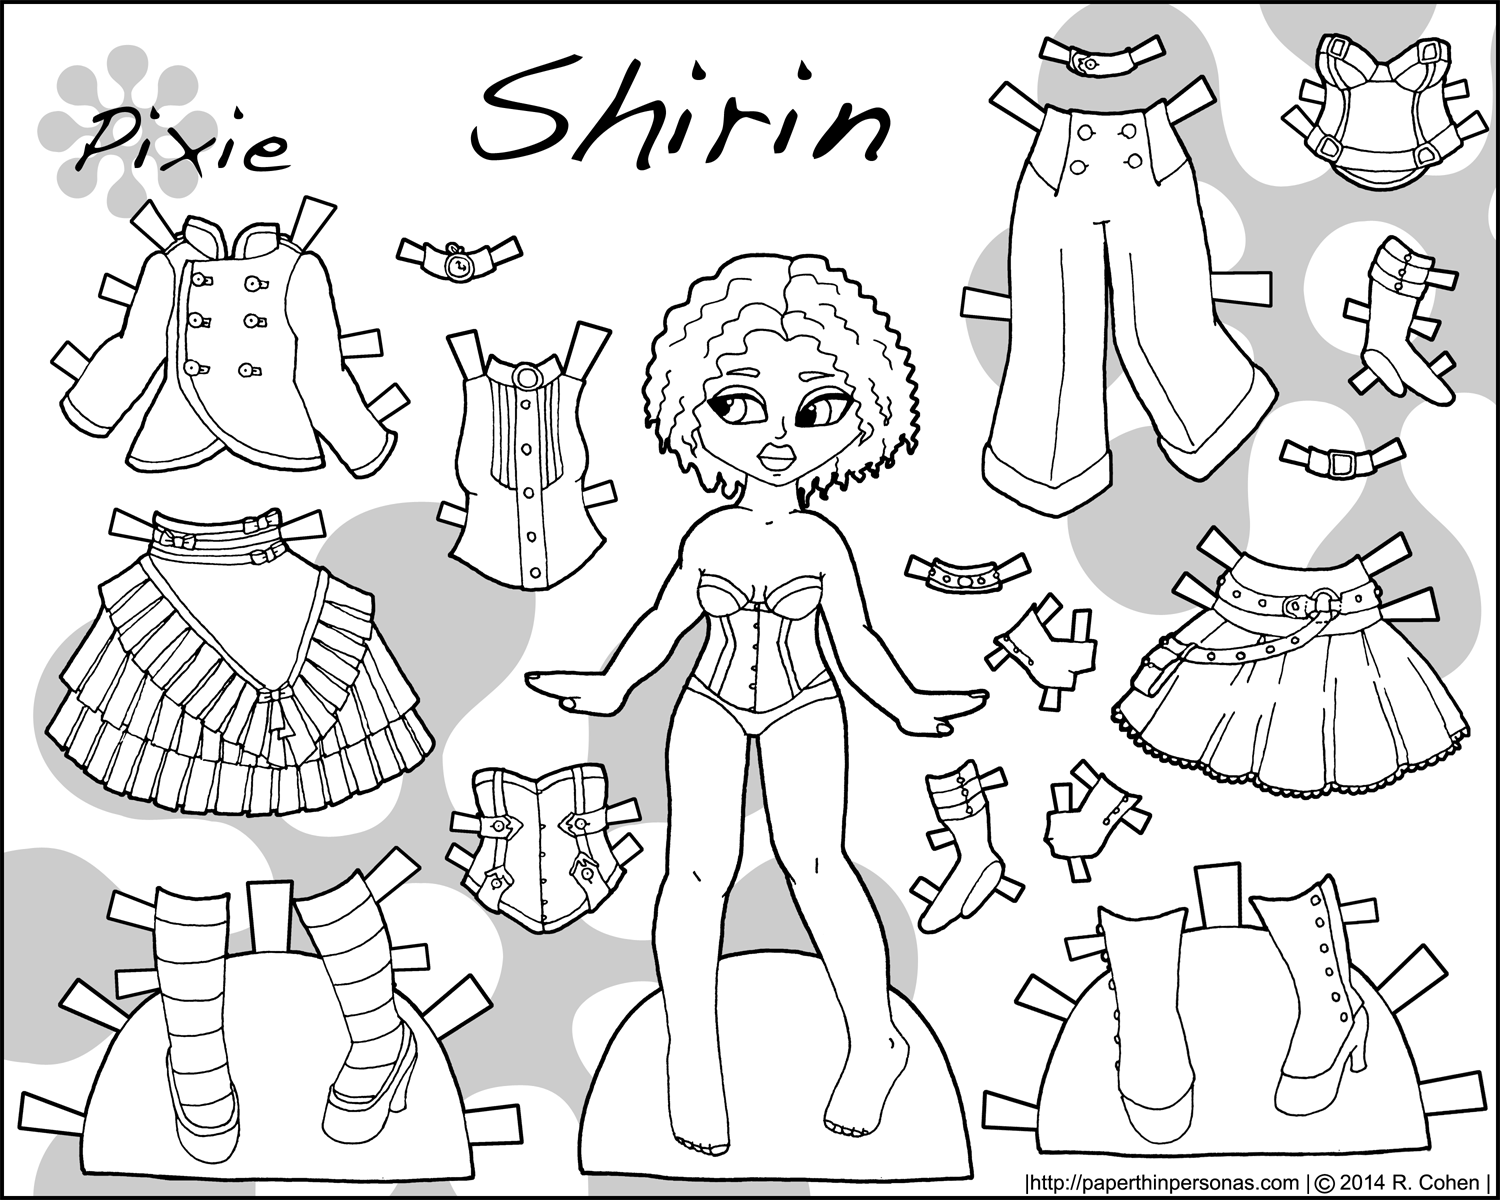 steampunk coloring pages shirin steampunk paper doll colorable doll - Paper Doll Clothes Coloring Pages